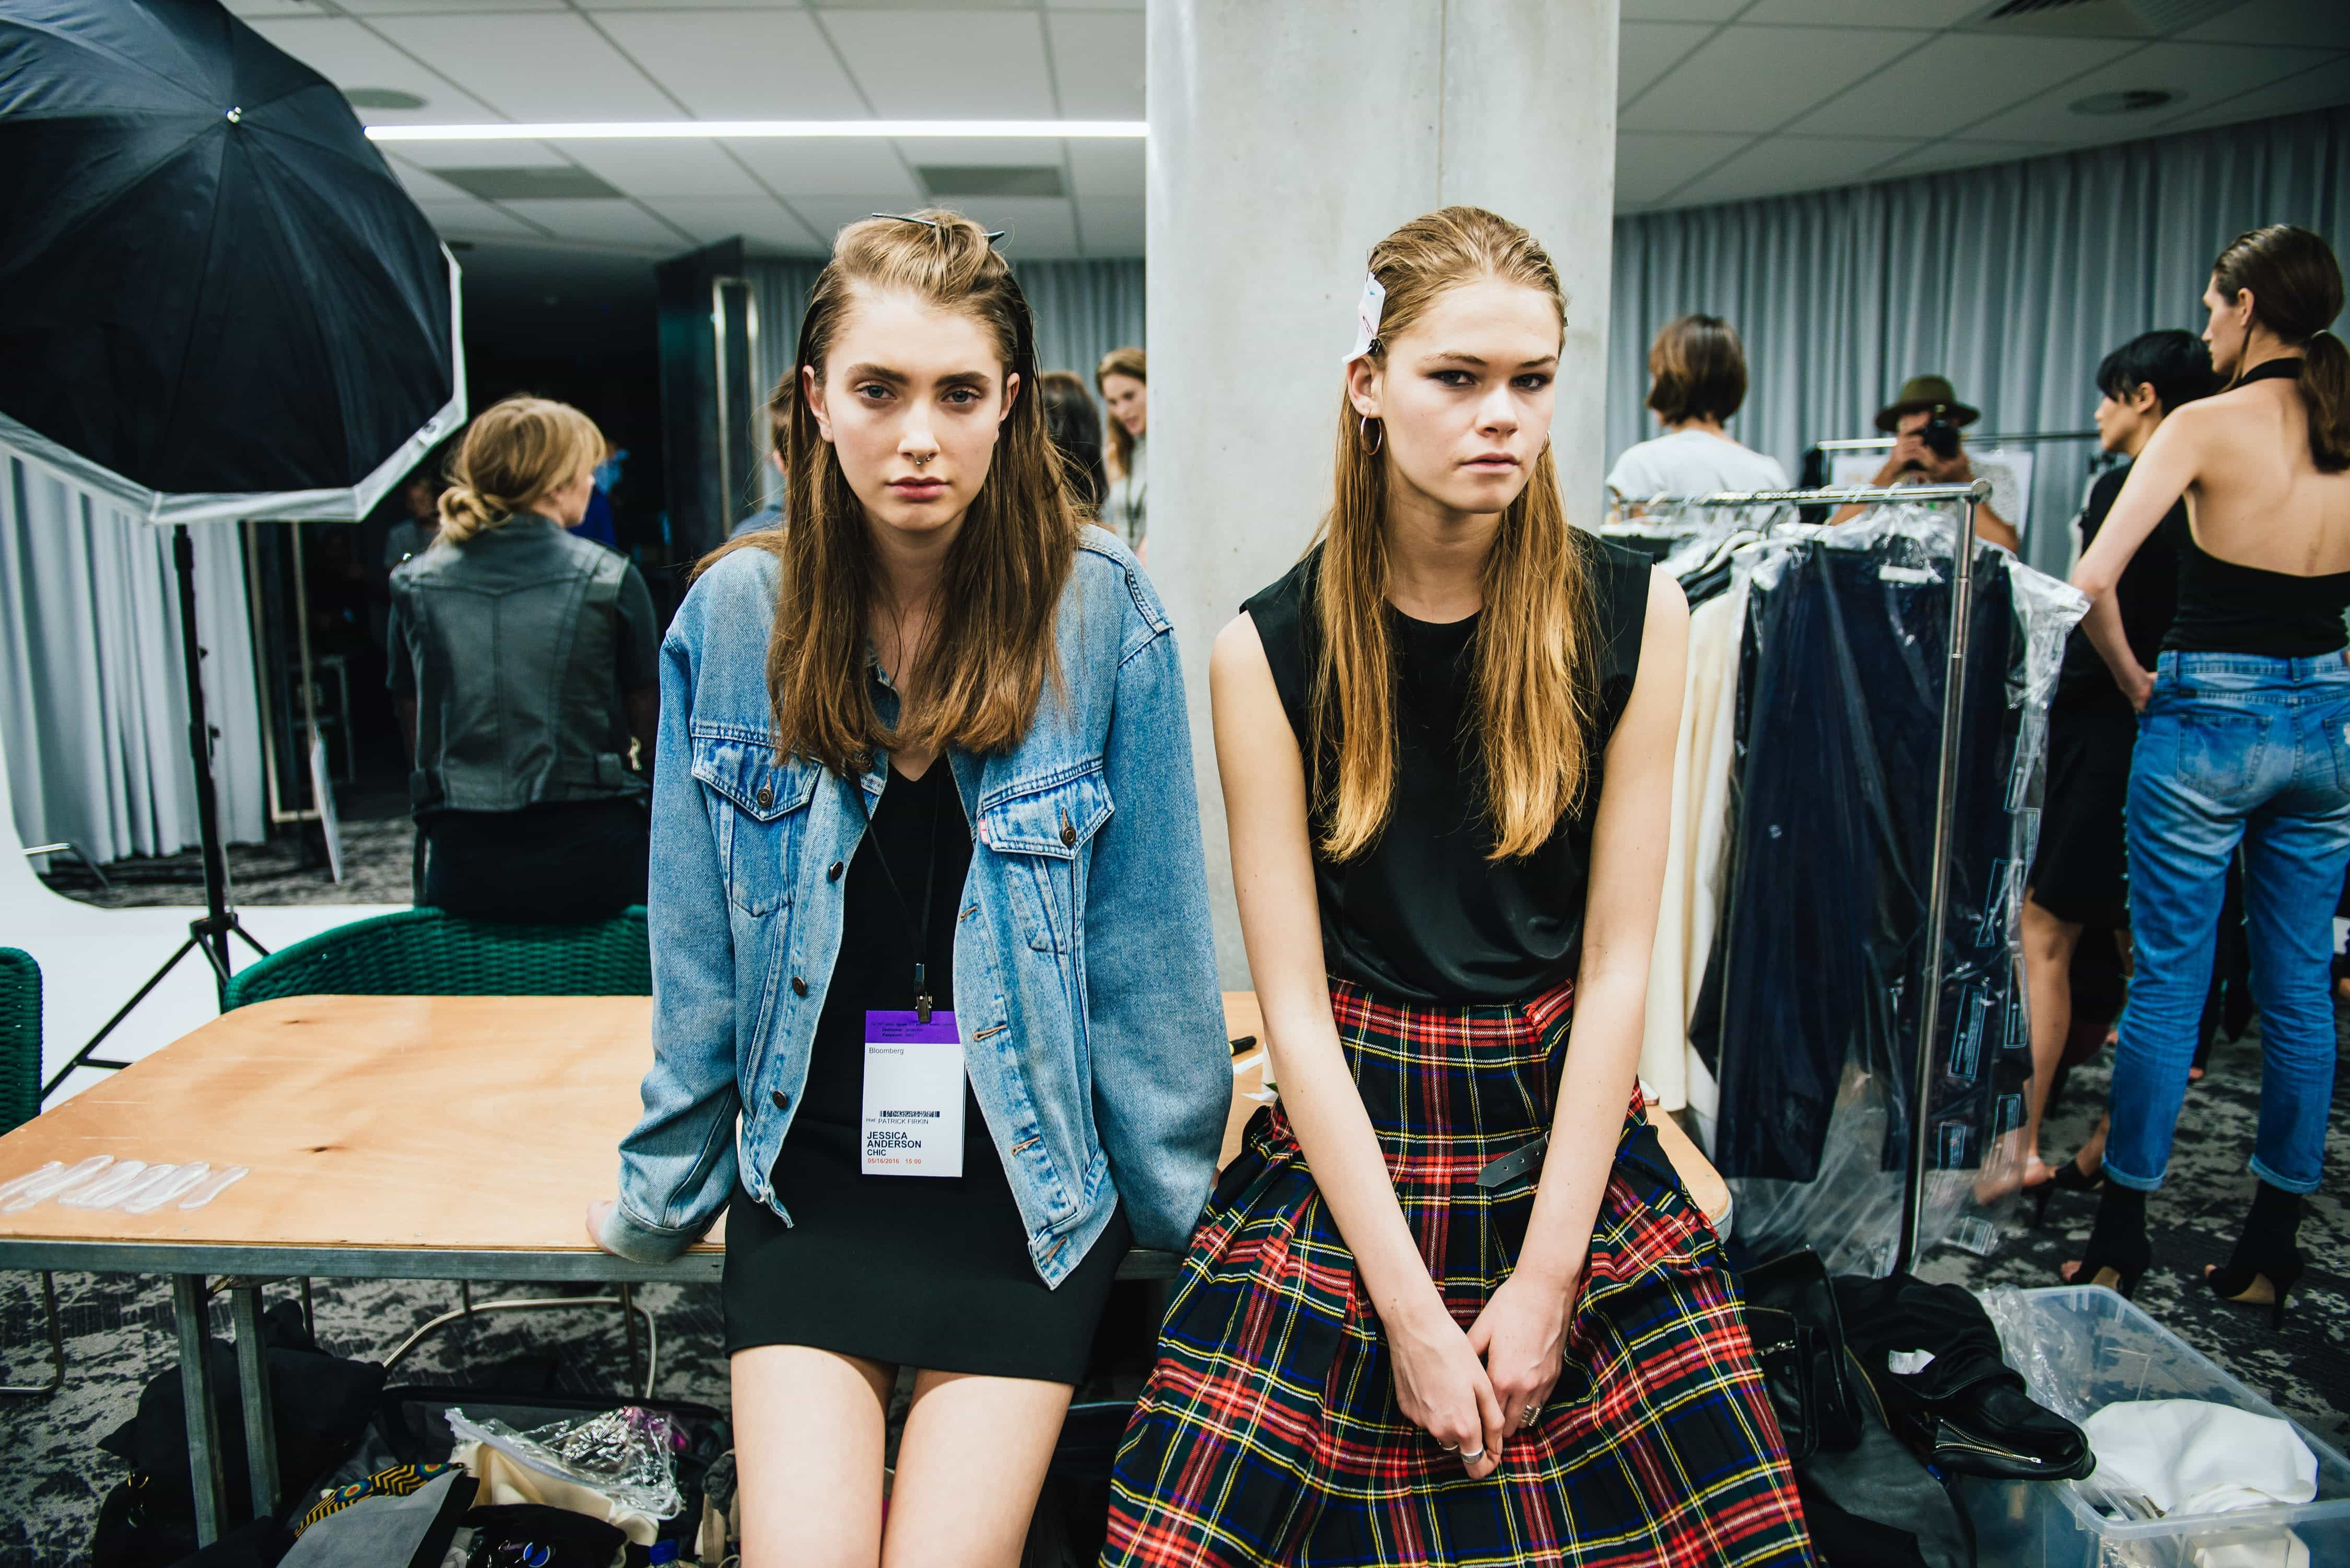 Facebook Live Best Practices - An image of two females backstage at a fashion show